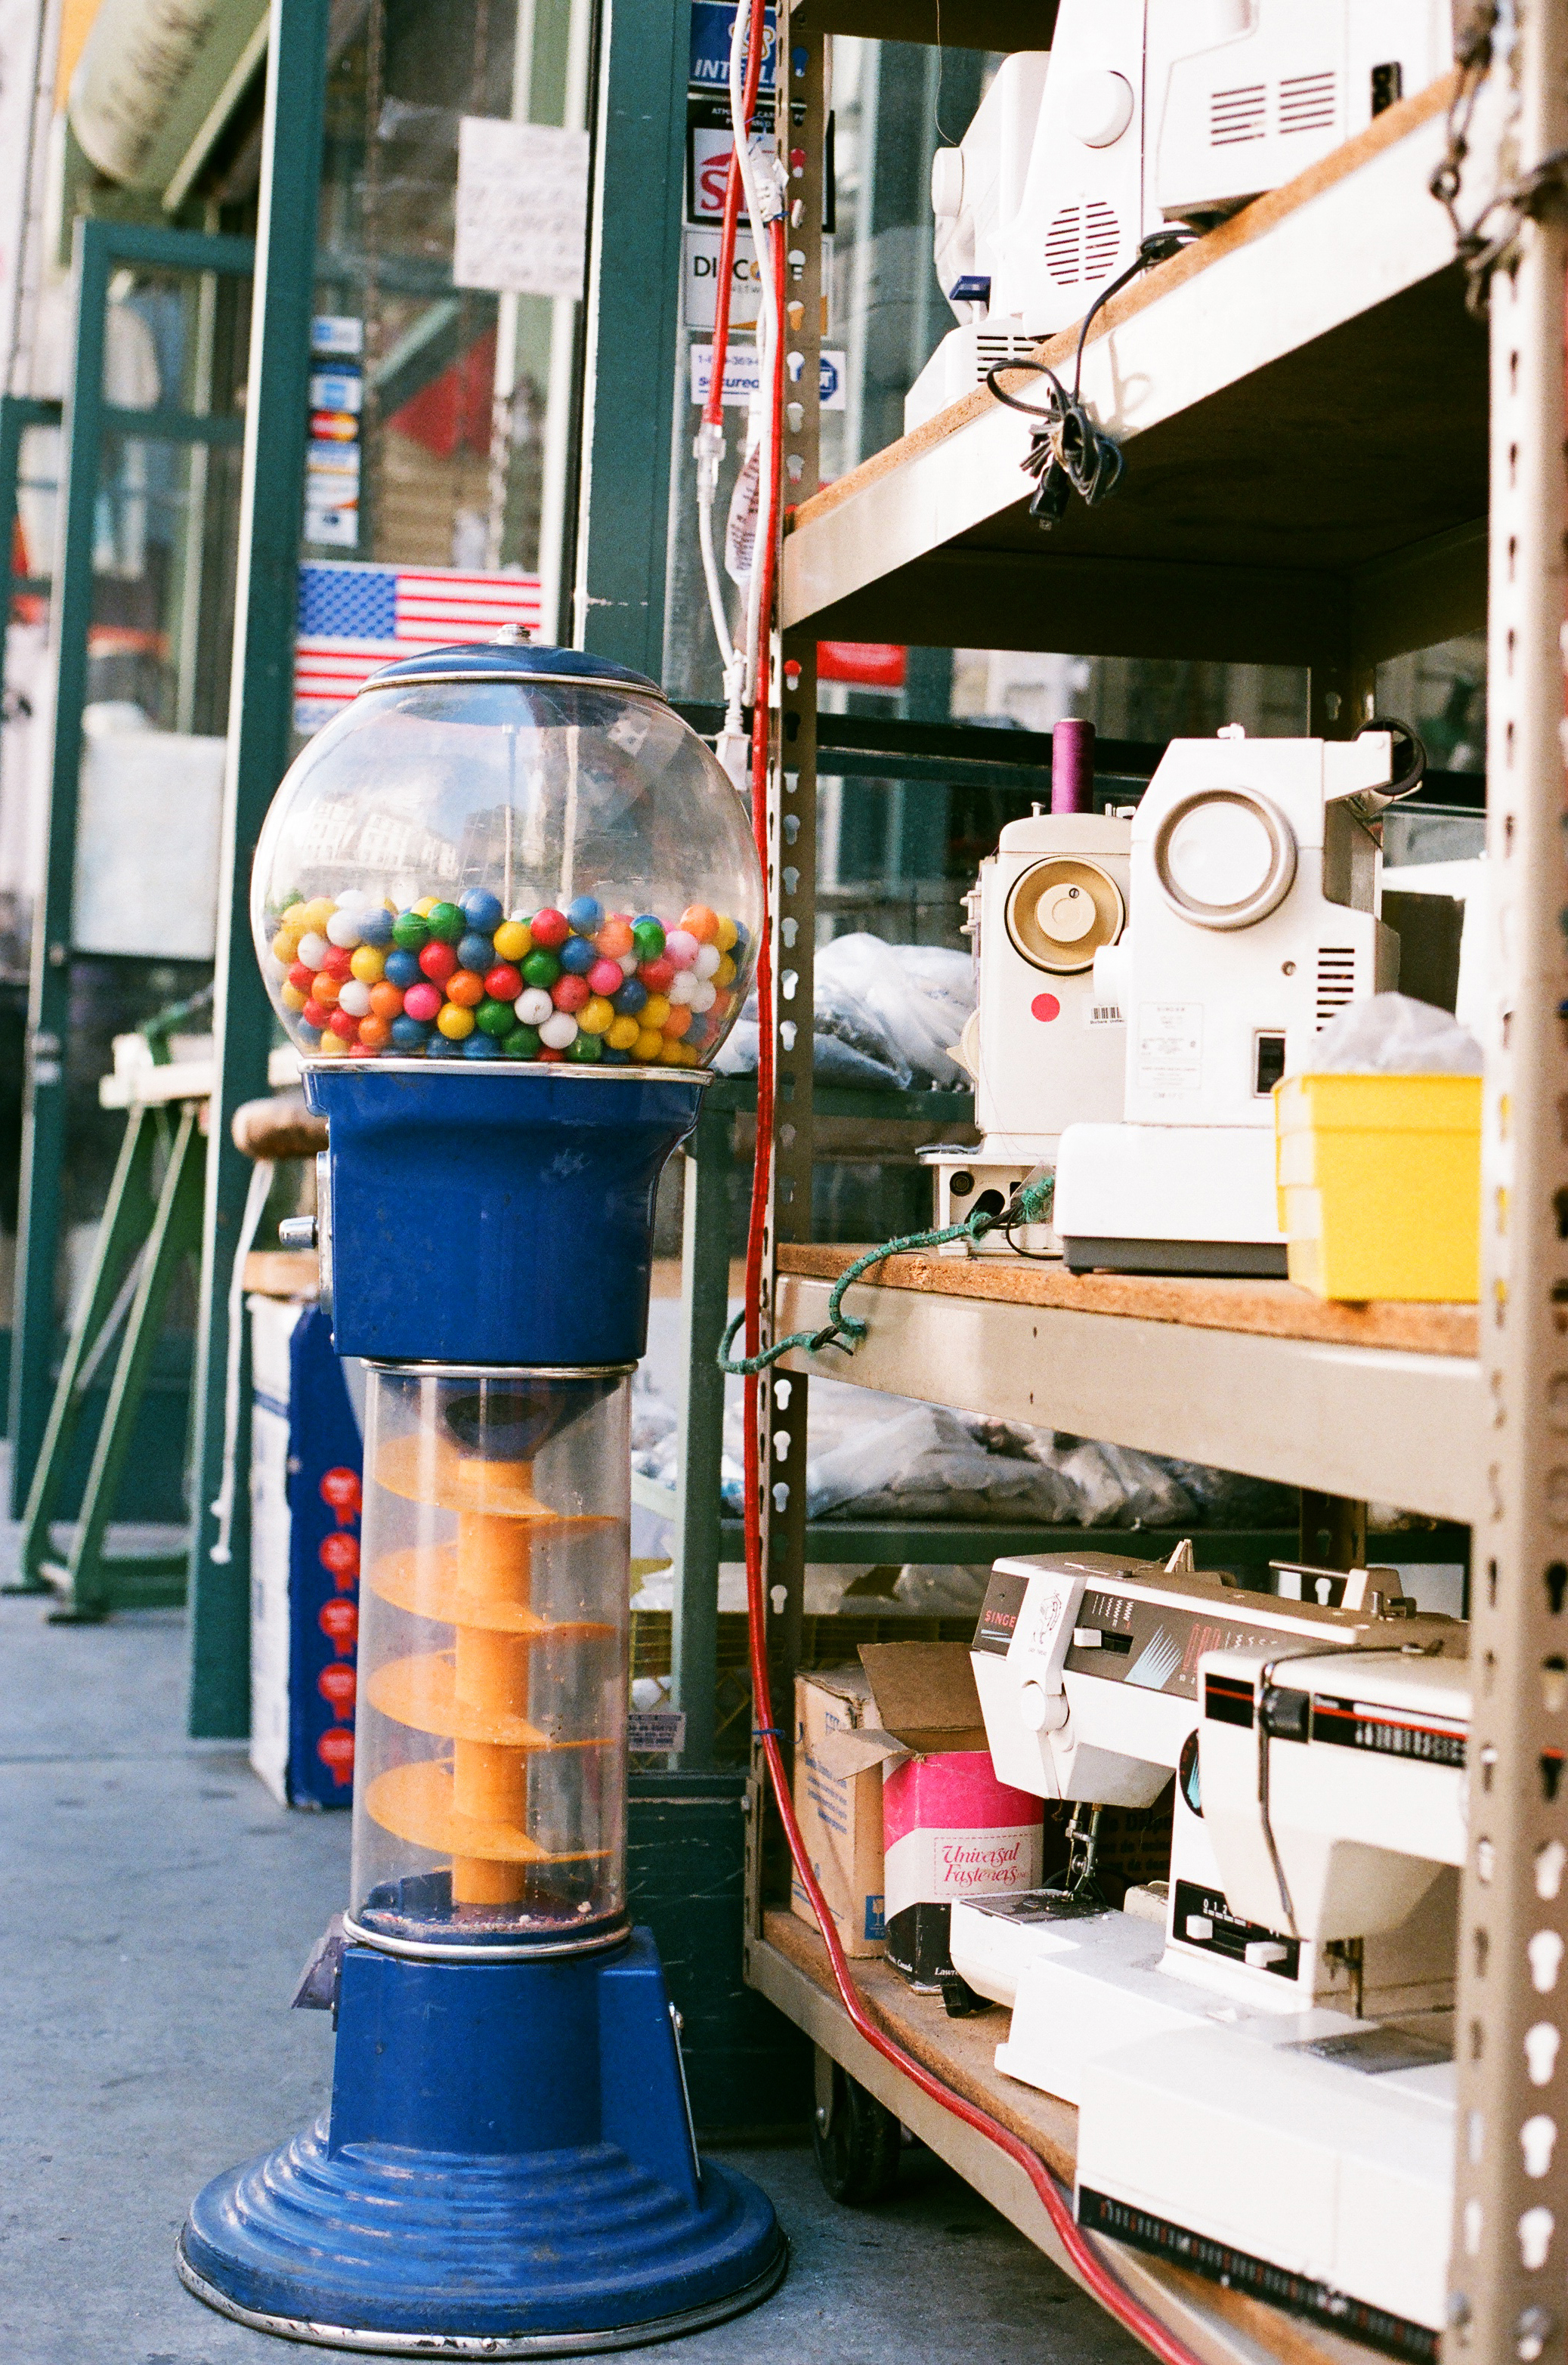 Vintage gum machine at Fashion District sewing machine shop. 35mm